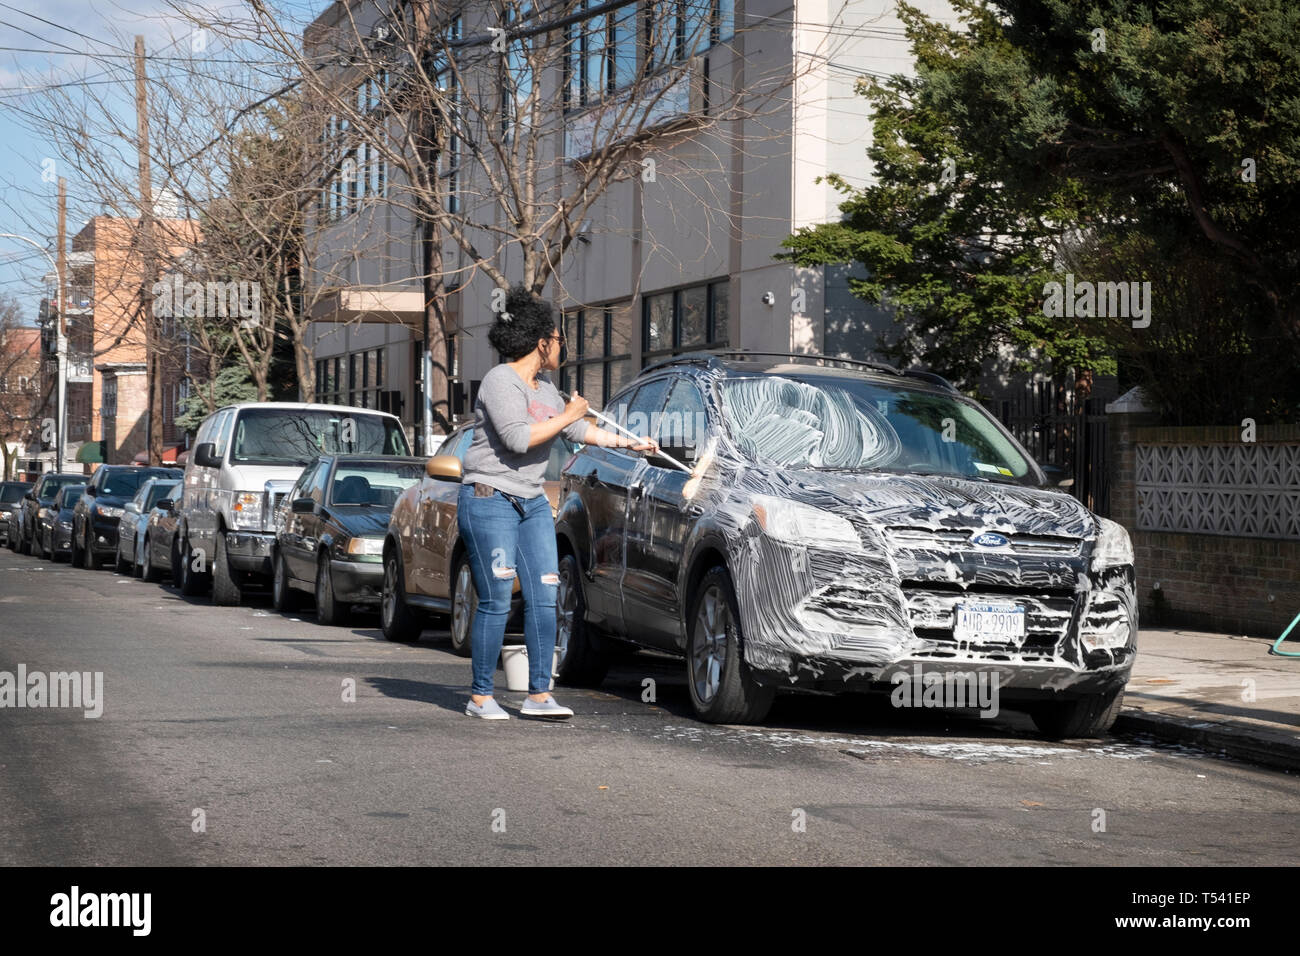 A woman washing her SUV with soap and water on a side street in Corona, Queens, New York City Stock Photo